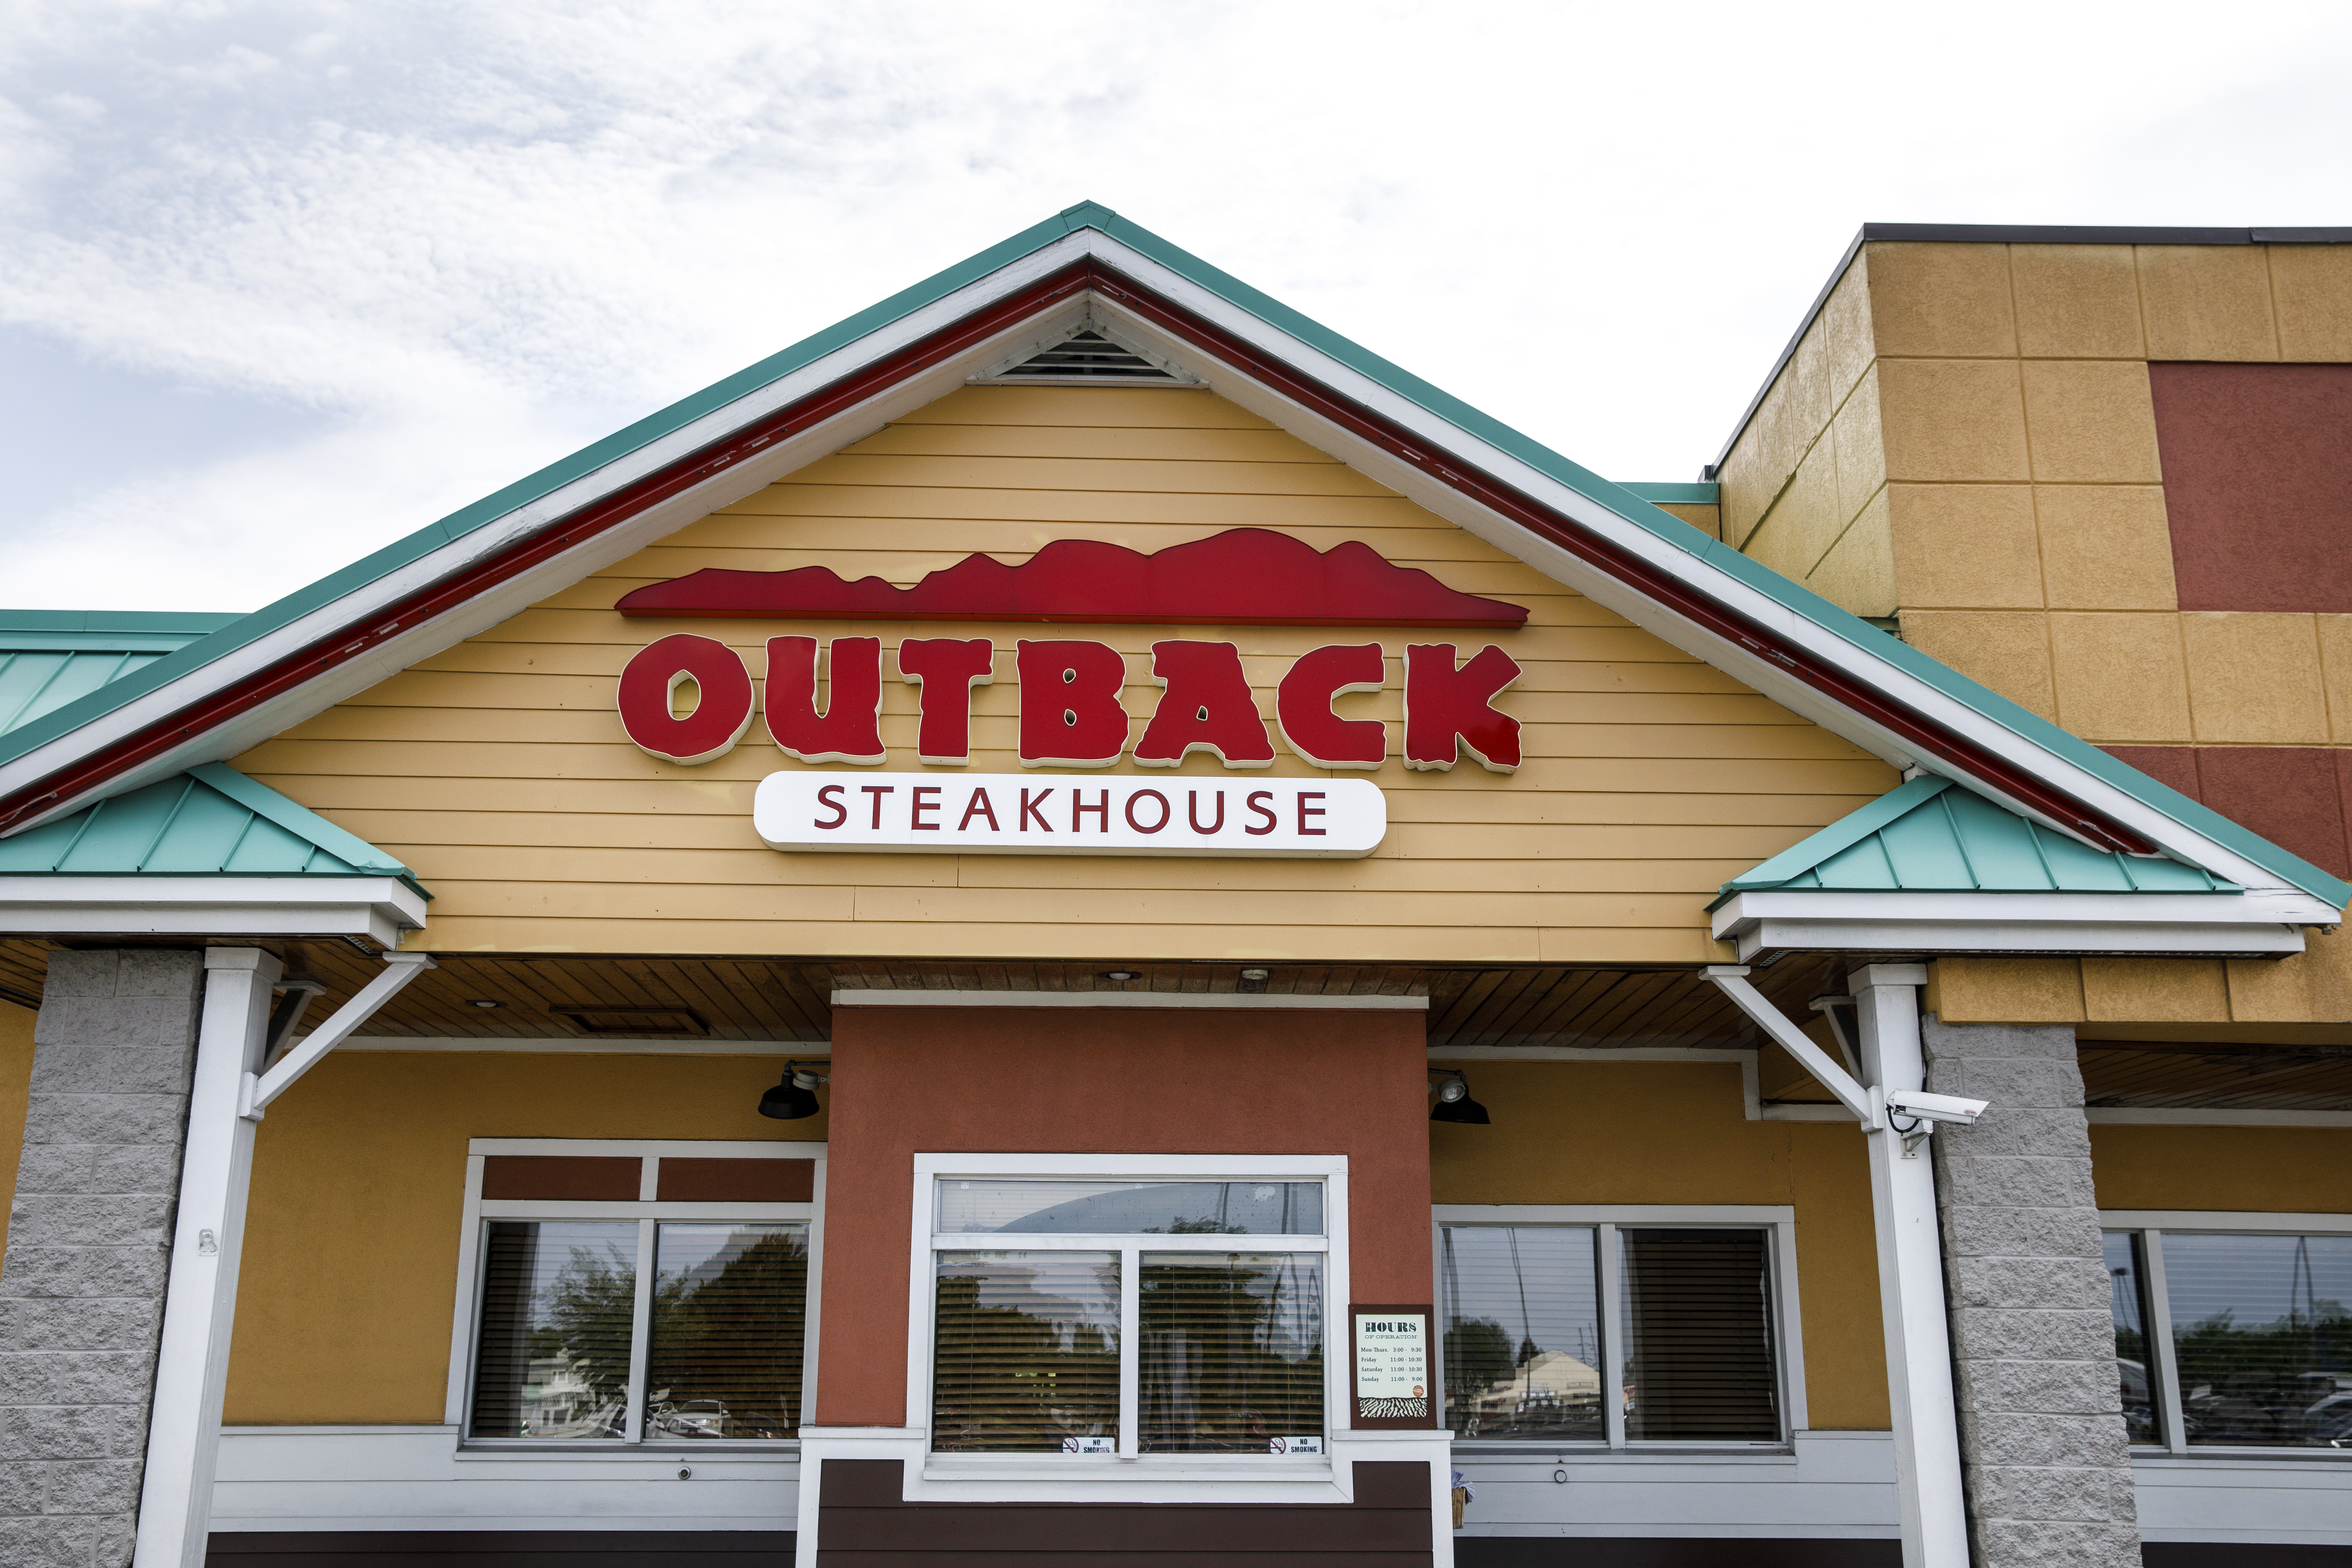 latest coronavirus related layoff notices to state includes reduction of hours at outback steakhouse parent company masslive com https www masslive com coronavirus 2020 05 latest coronavirus related layoffs include 764 jobs at outback steakhouse parent company html